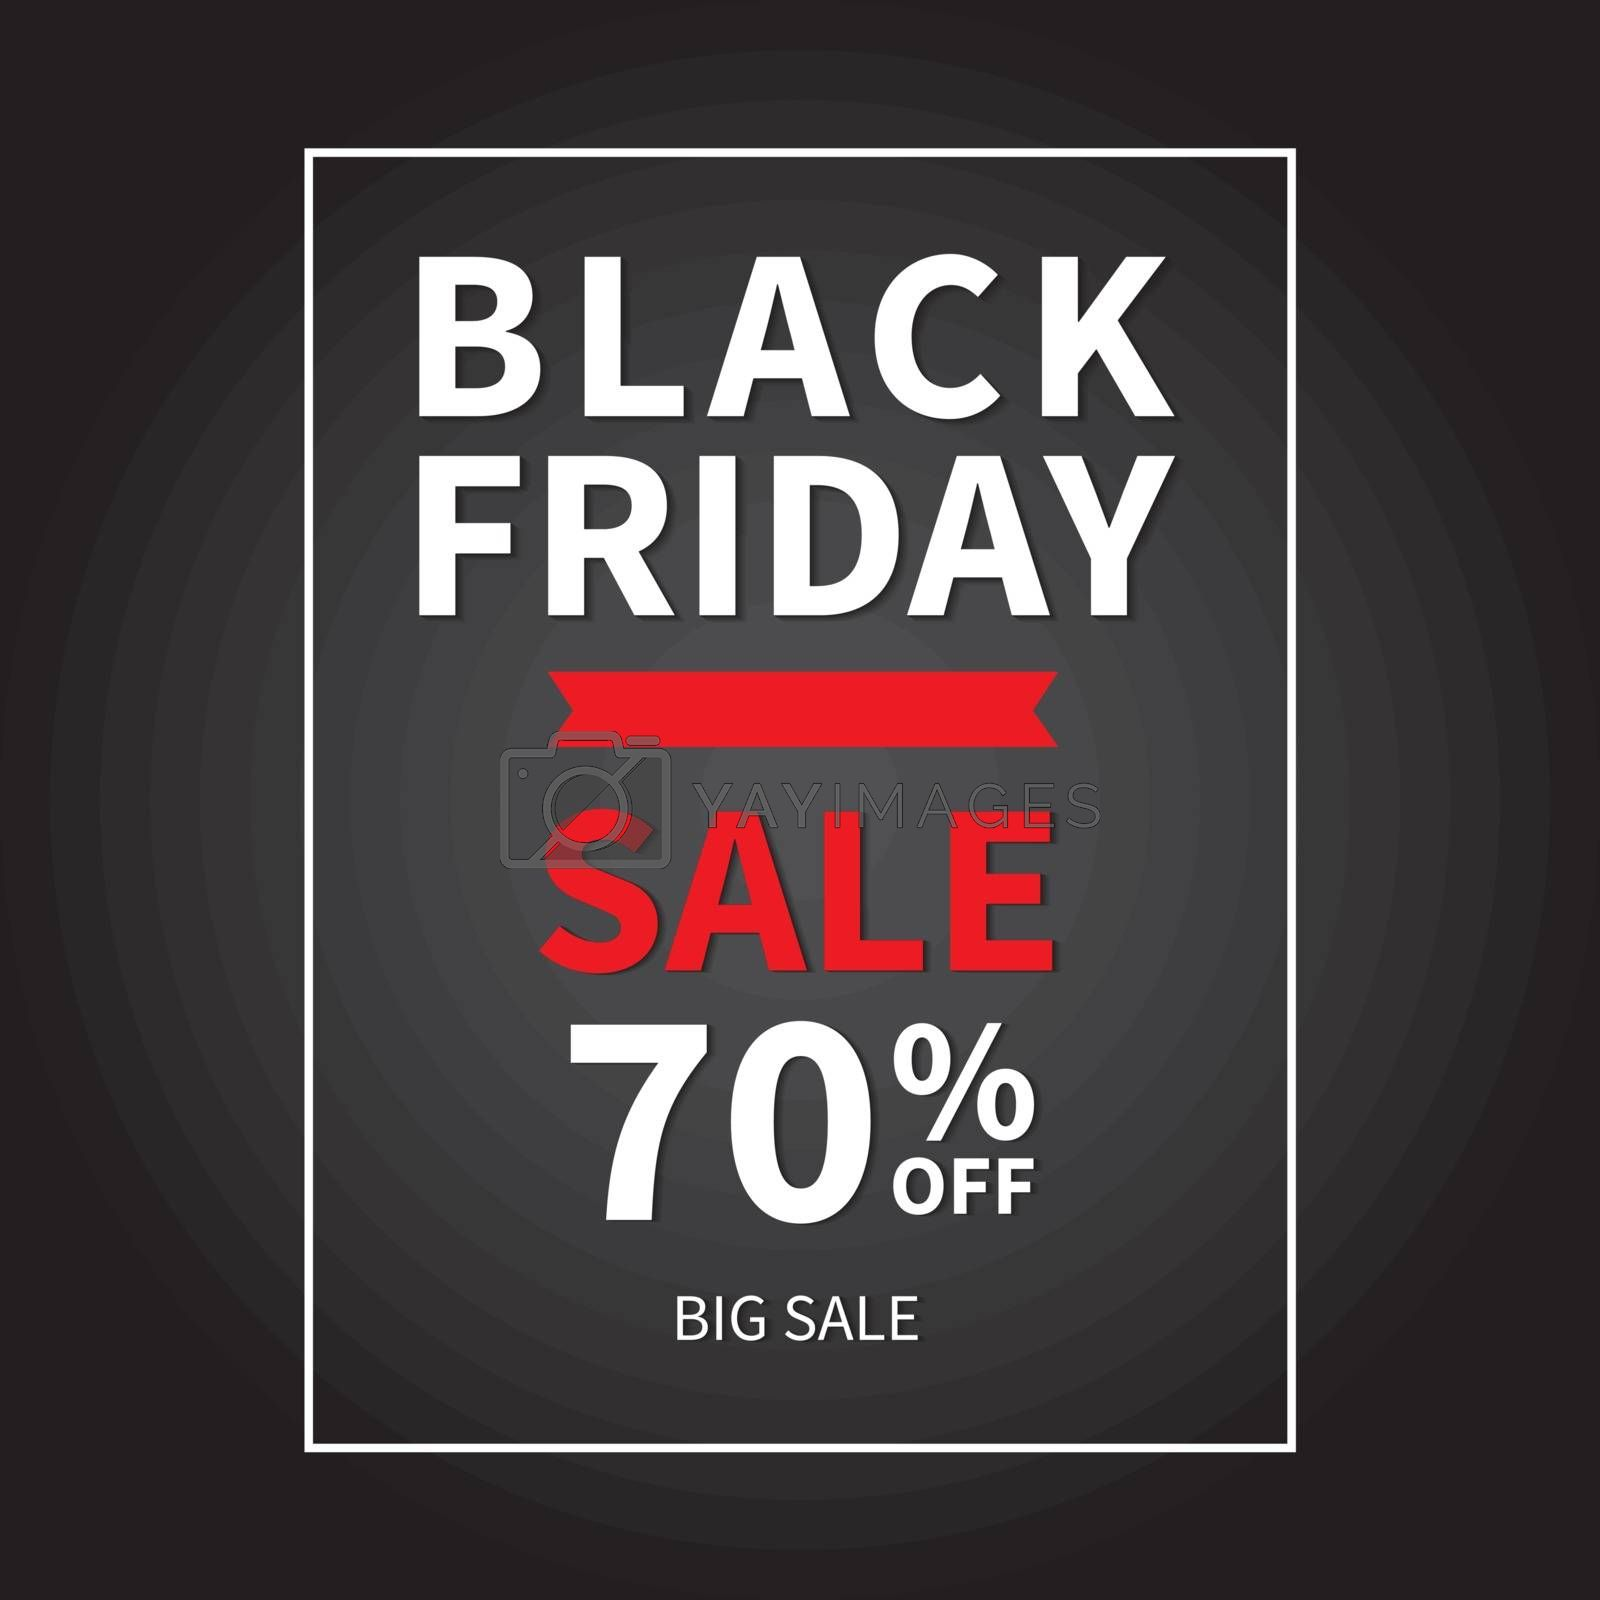 Black friday sale banner design template background.